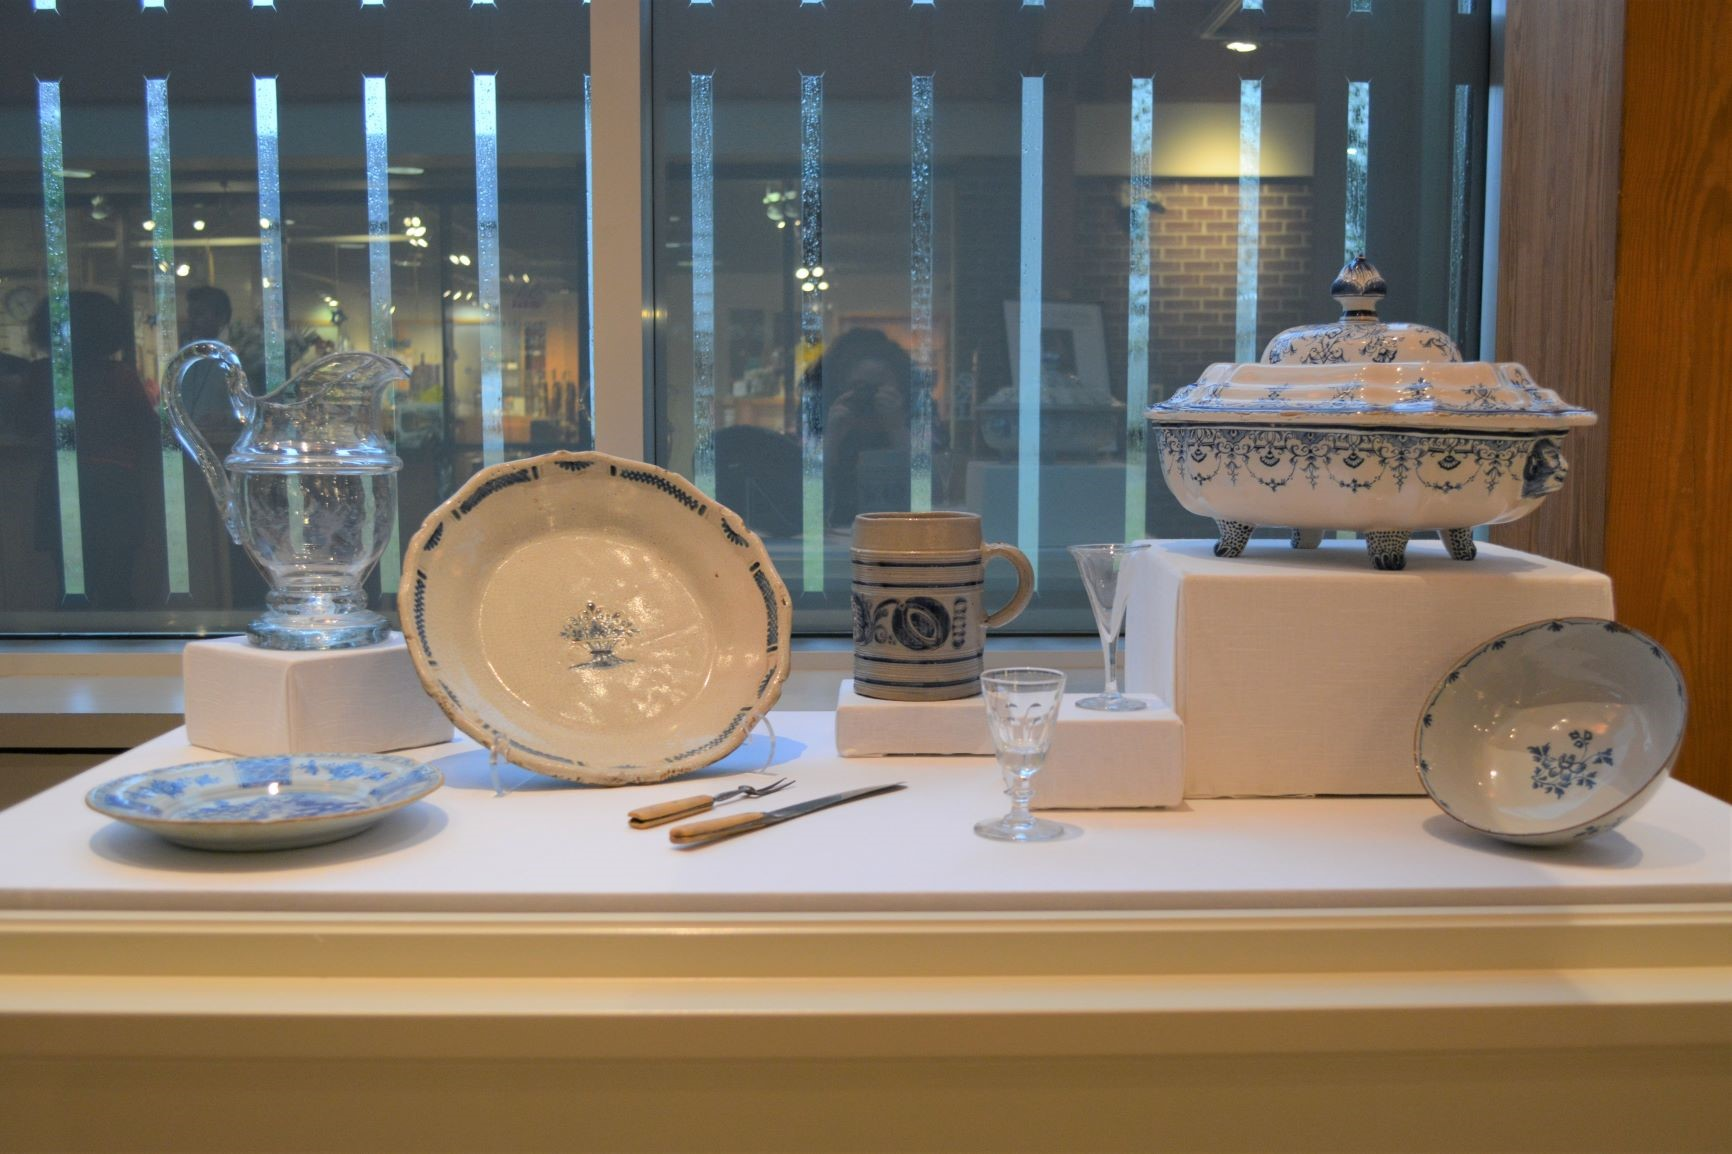 display of white dishes with blue decorative patterns